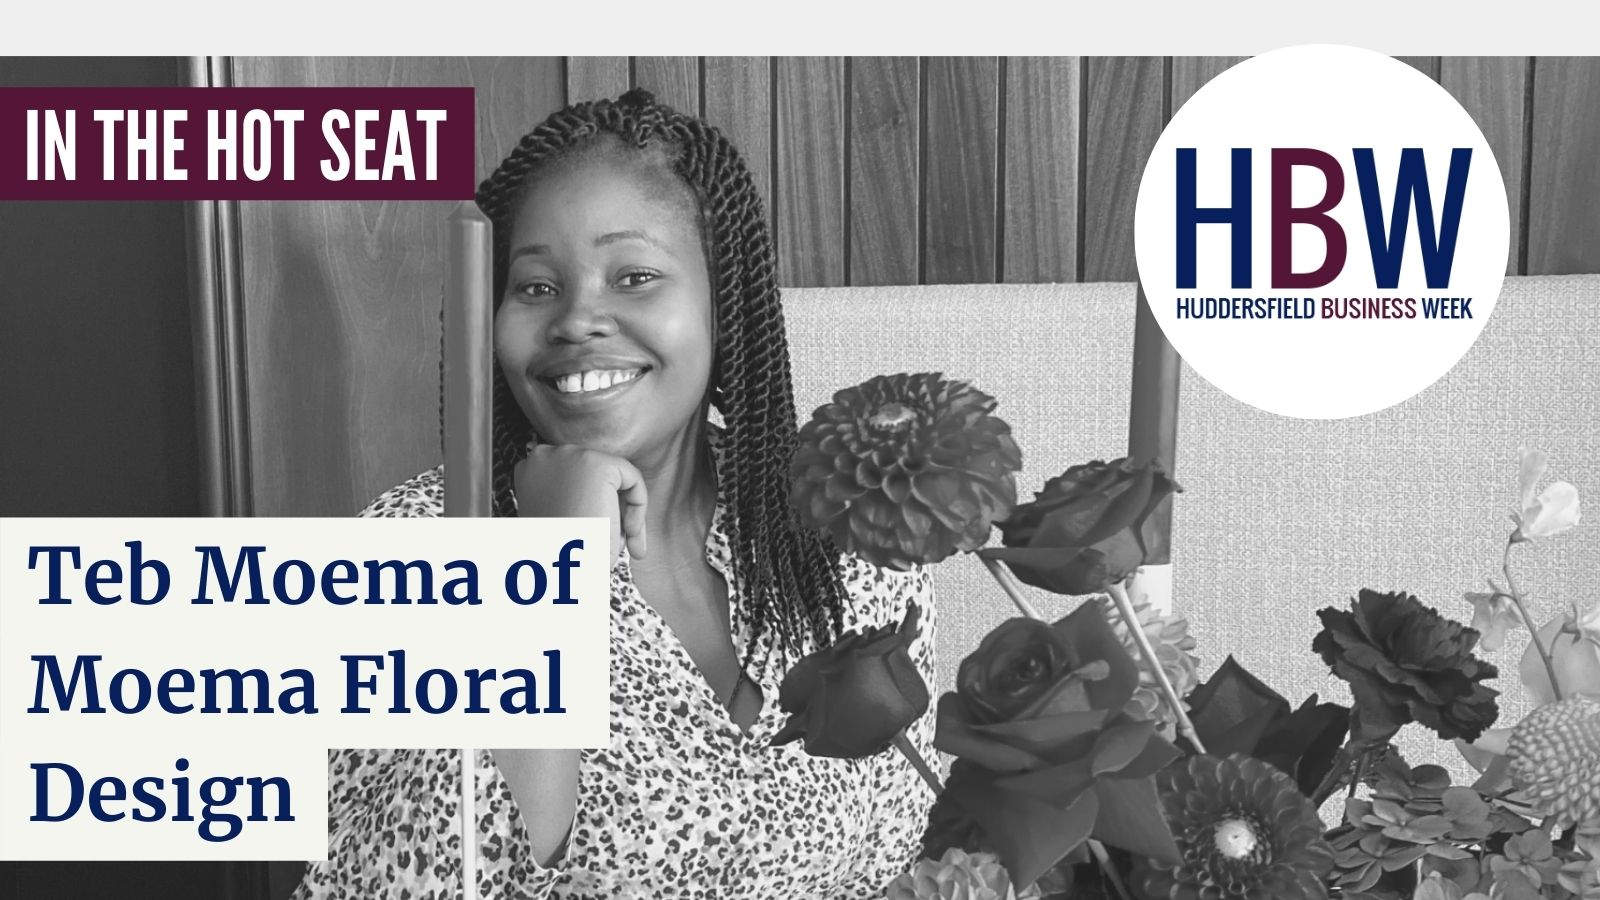 In the Hot Seat with… Teb Moema of Moema Floral Design!